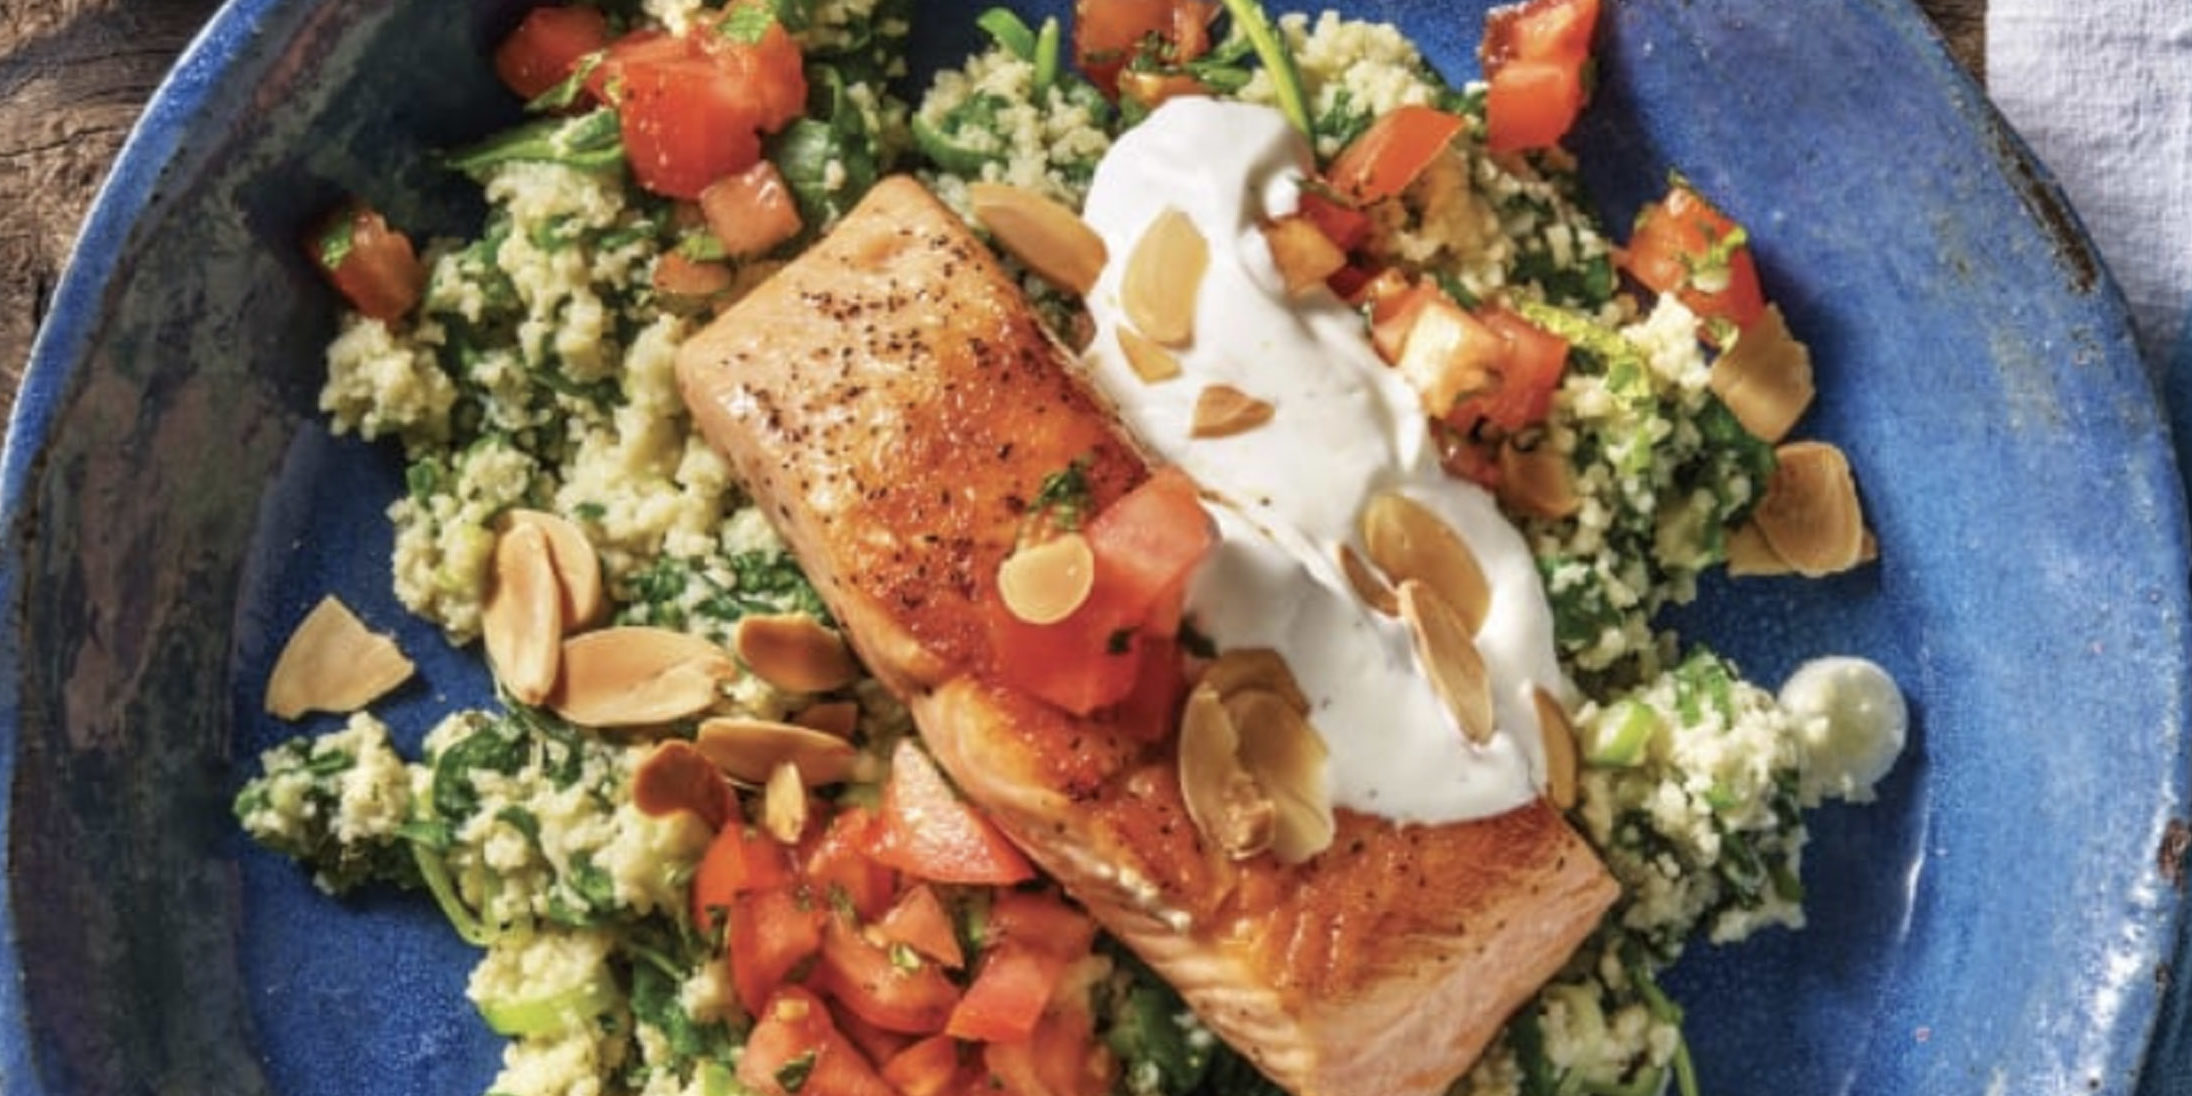 Seared Salmon & Herbed Couscous with Lemon Yoghurt & Toasted Almonds